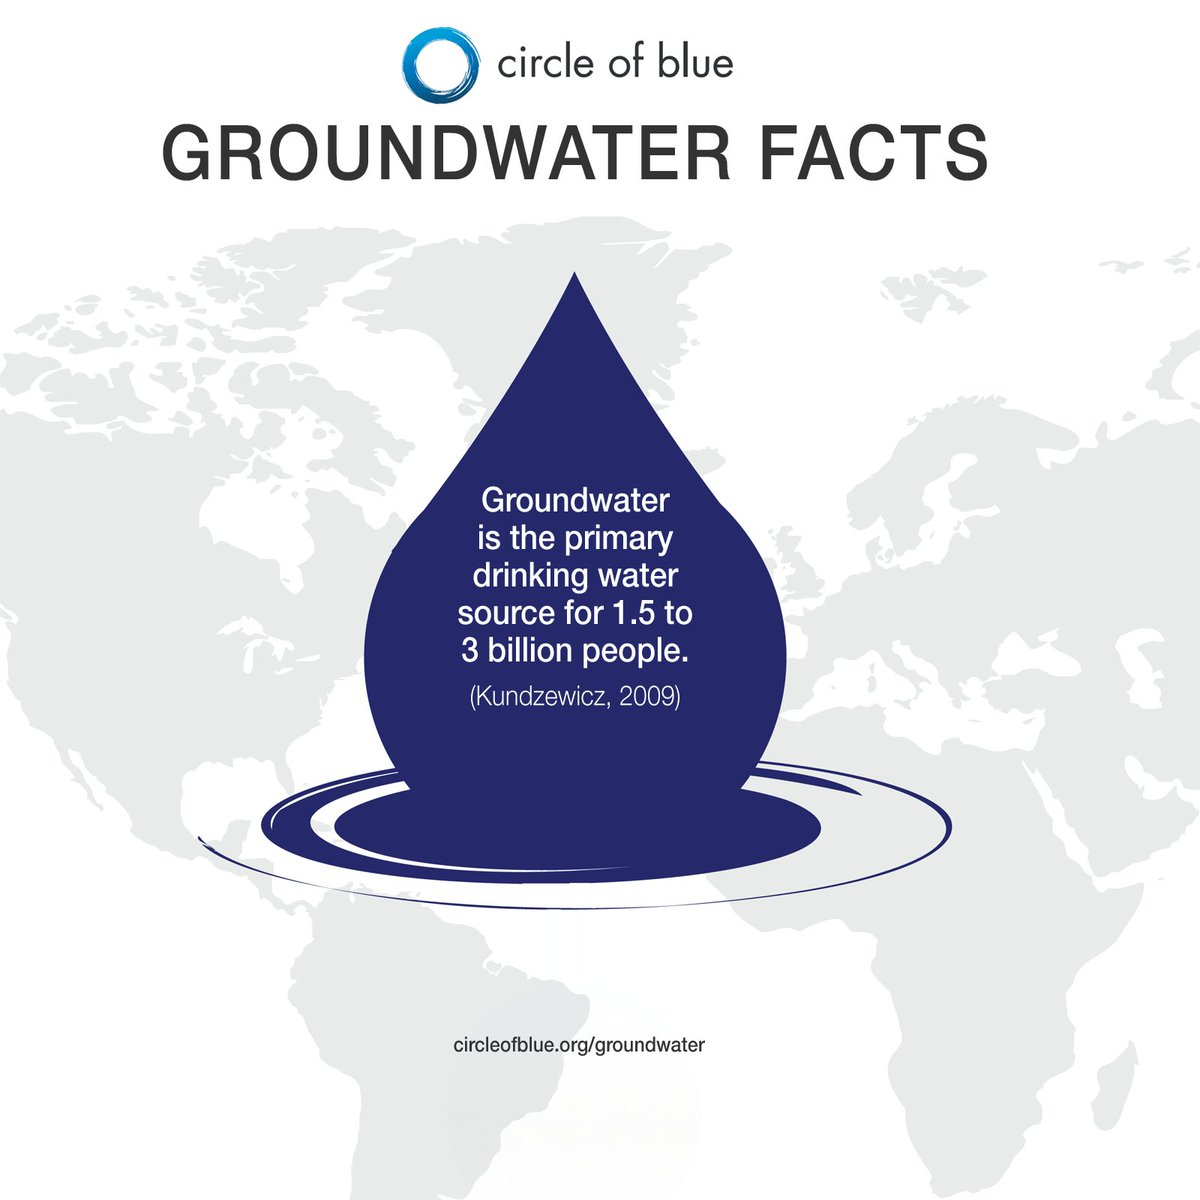 #Groundwater is the primary drinking #water source for 1.5 to 3 billion people. https://t.co/K8MQ2FtIgU https://t.co/D9anZcOtcU